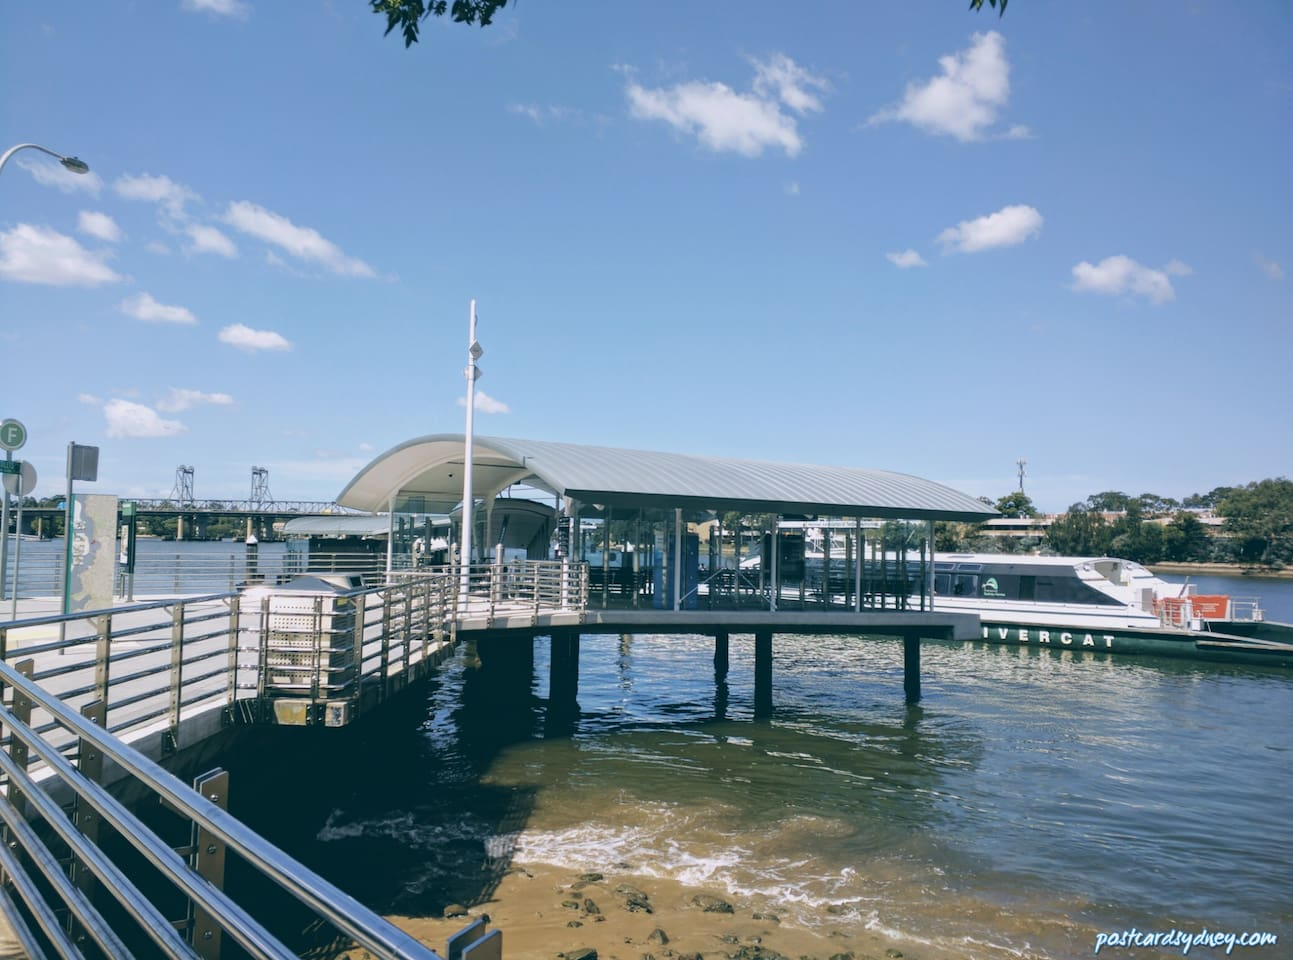 Meadowbank Ferry and park